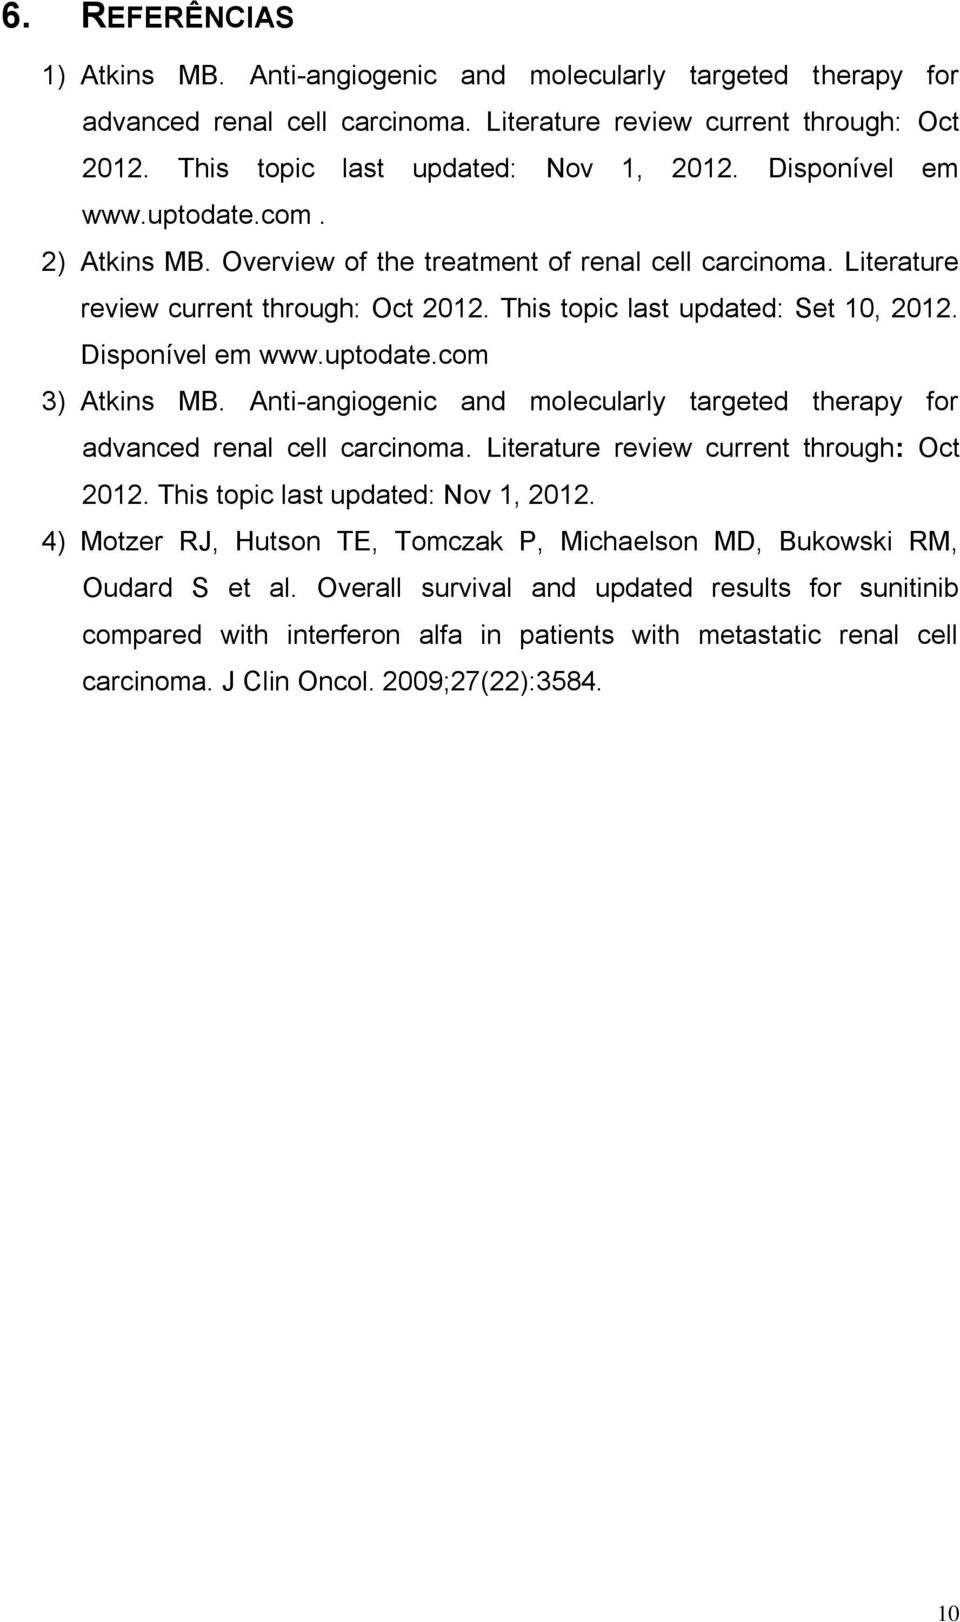 uptodate.com 3) Atkins MB. Anti-angiogenic and molecularly targeted therapy for advanced renal cell carcinoma. Literature review current through: Oct 2012. This topic last updated: Nov 1, 2012.